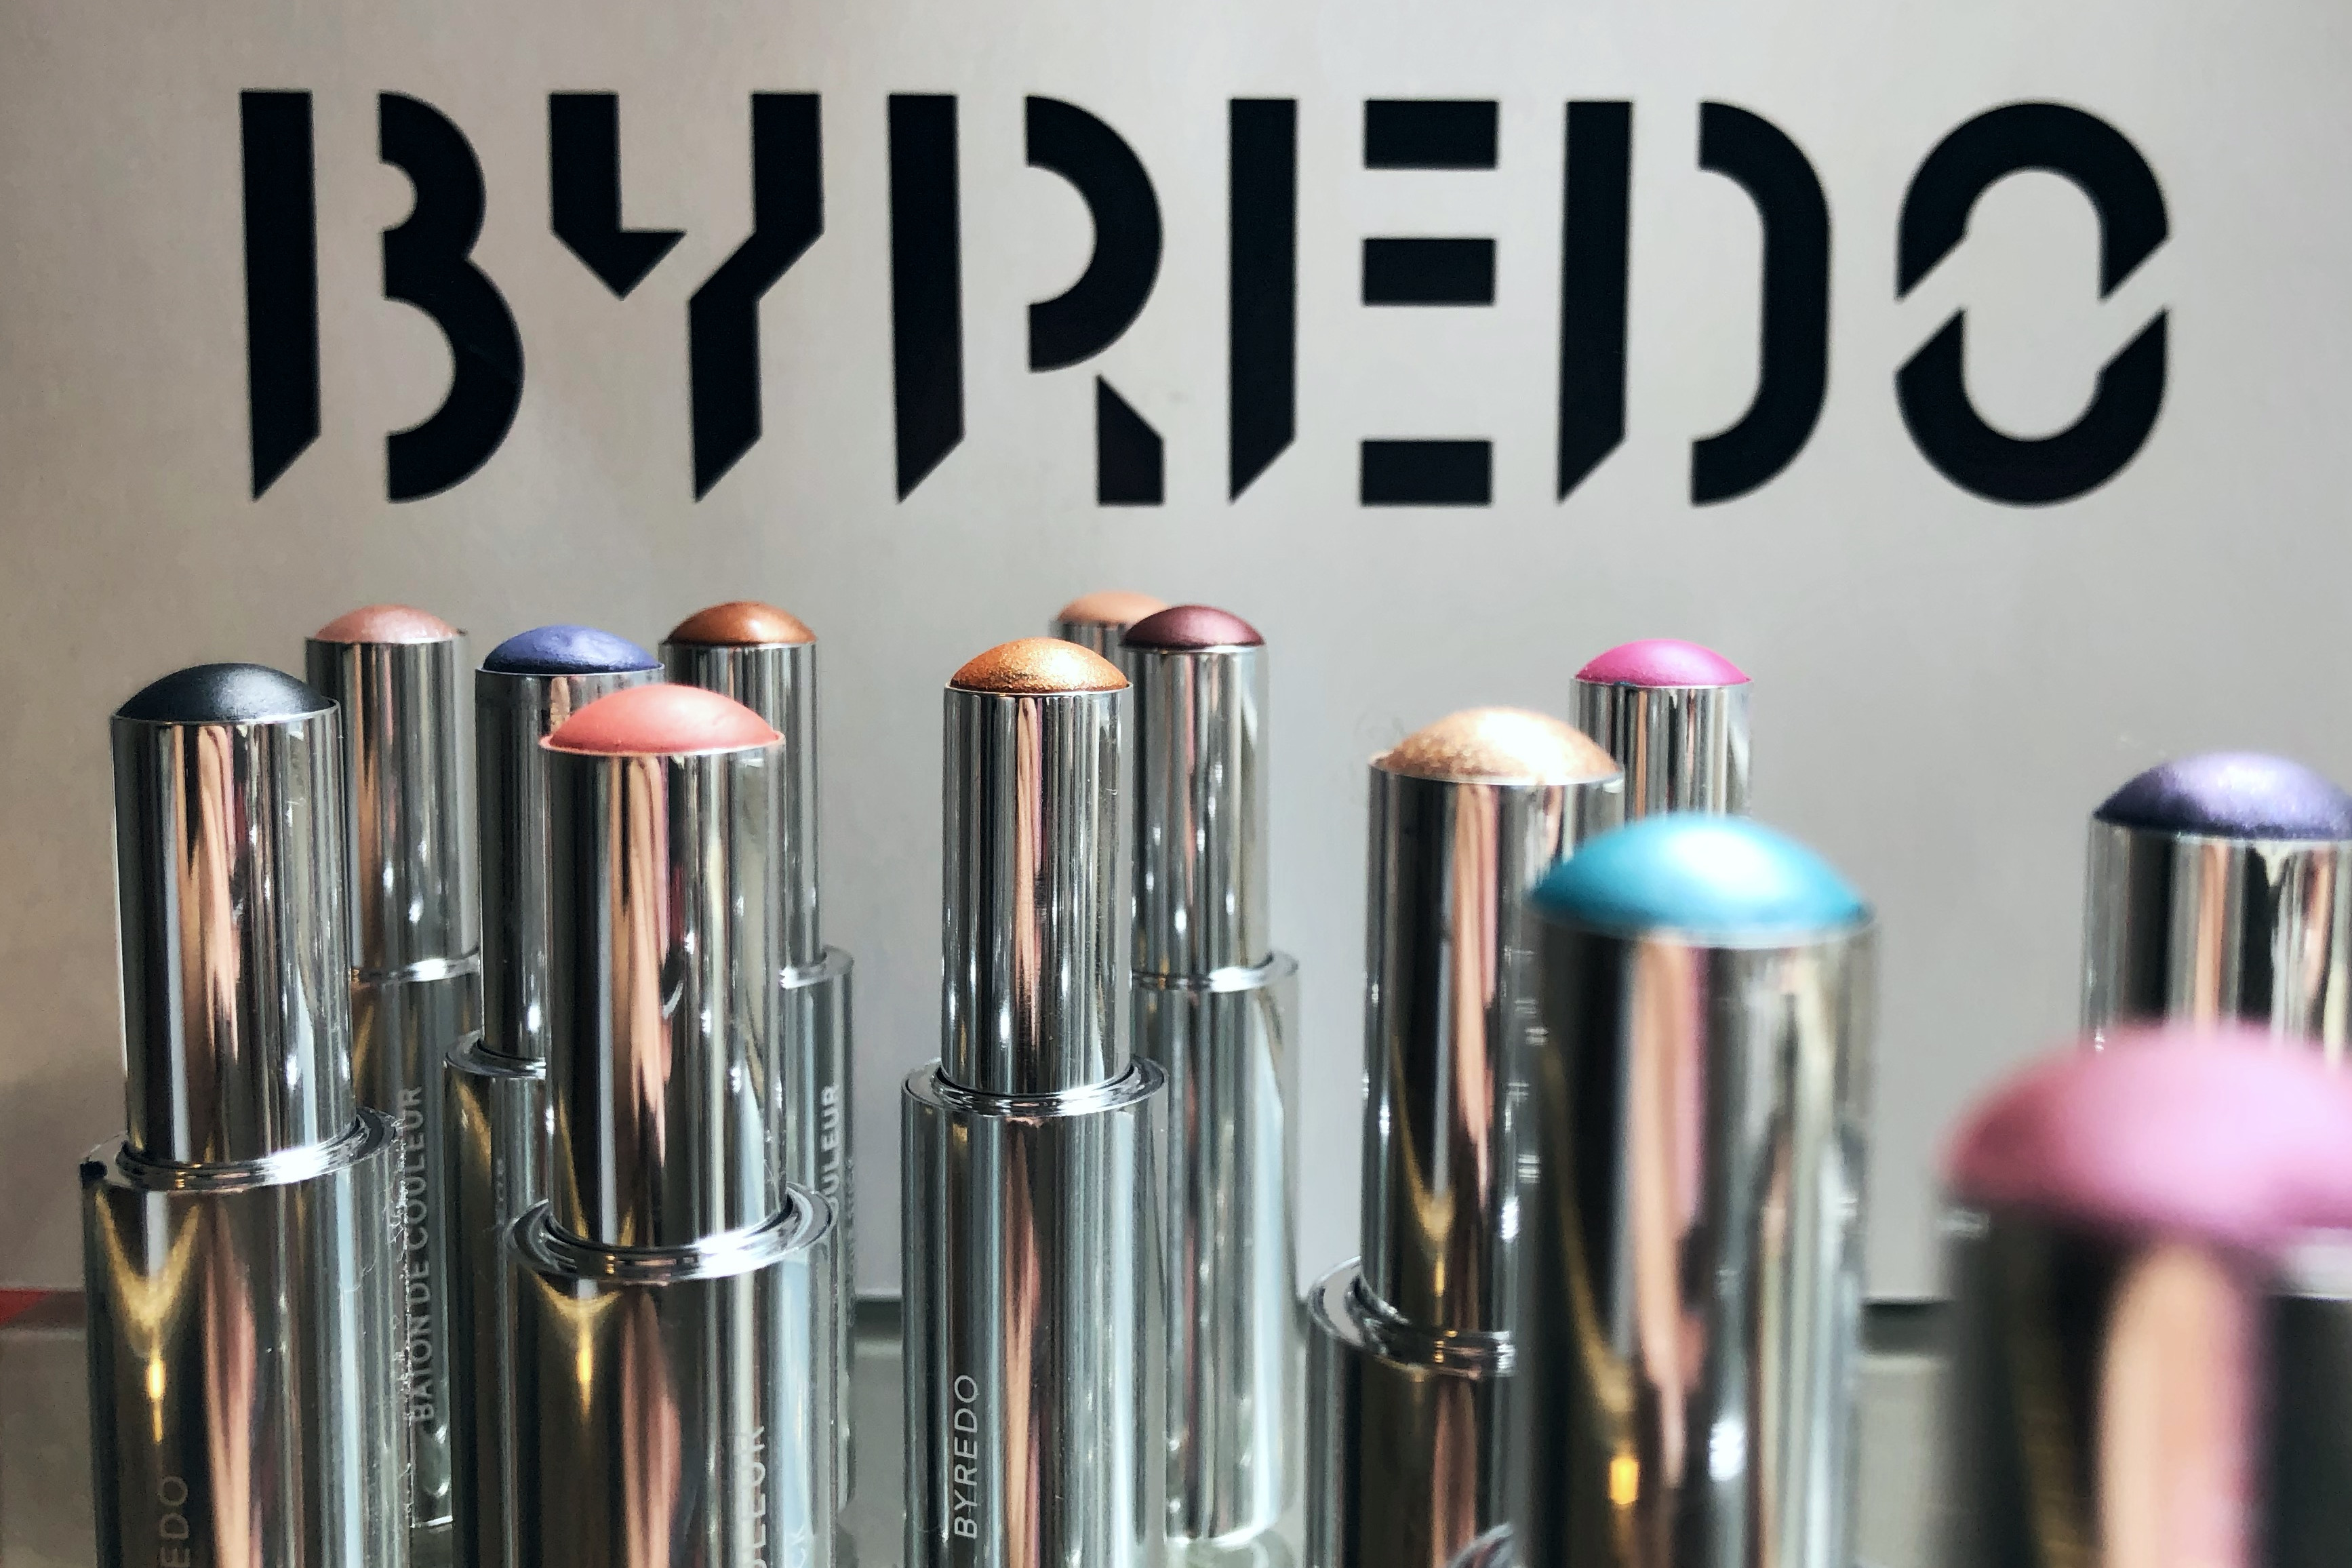 This Is The Best Byredo Makeup Product